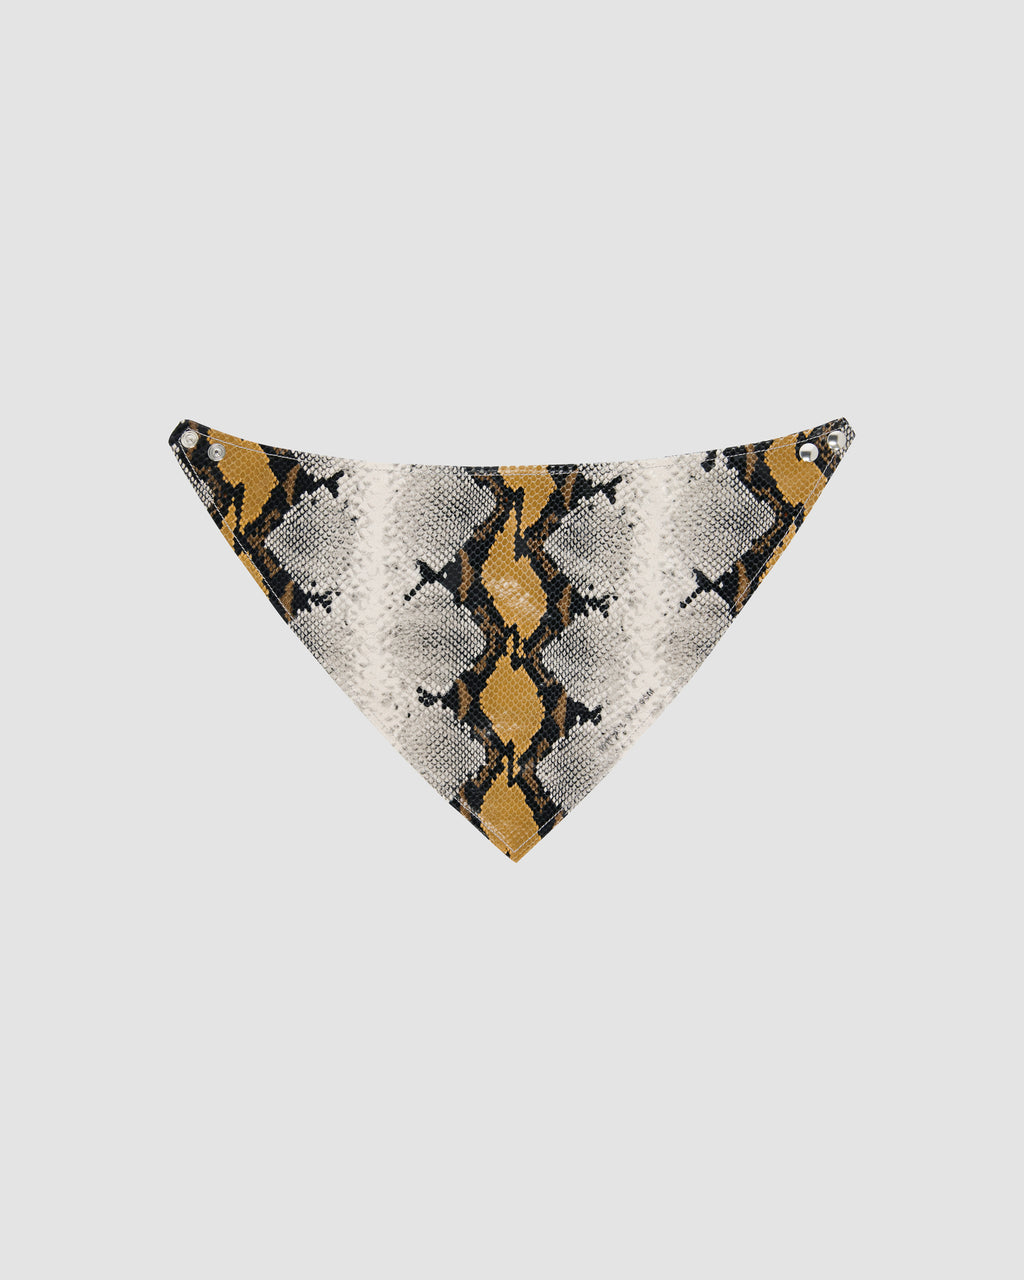 LEATHER ANIMAL PRINT BANDANA W/ METAL LOGO